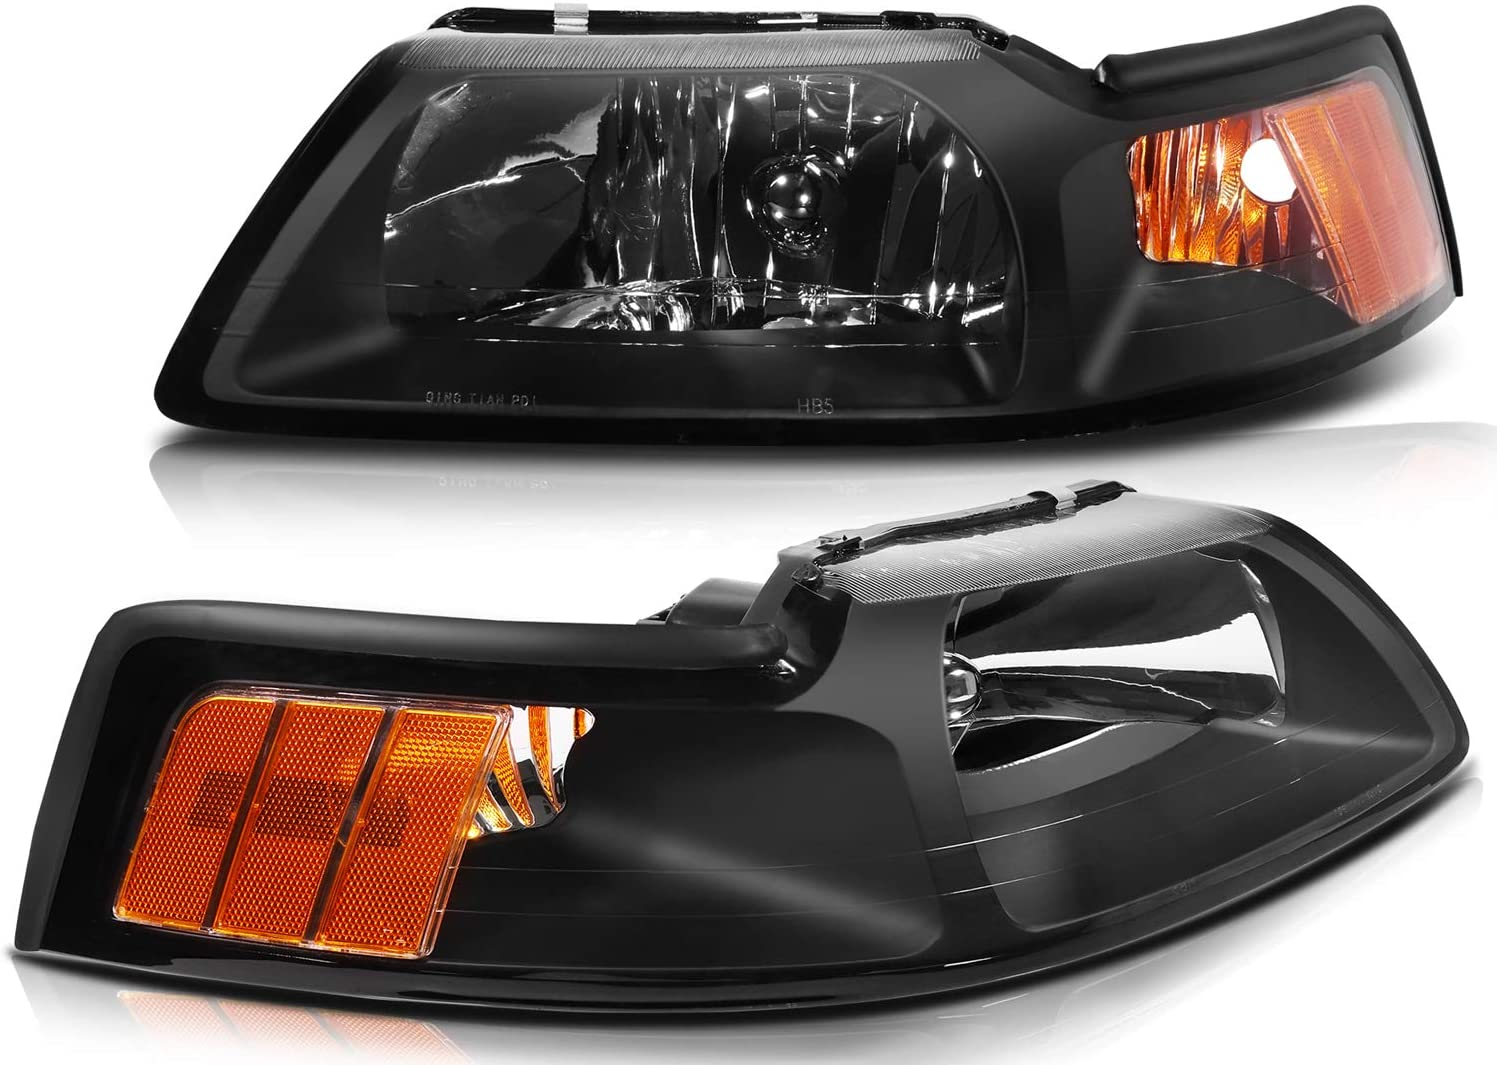 LBRST Headlight Assembly for Ford Mustang 1999-2004 Black Housing Driver and Passenger Side Headlights